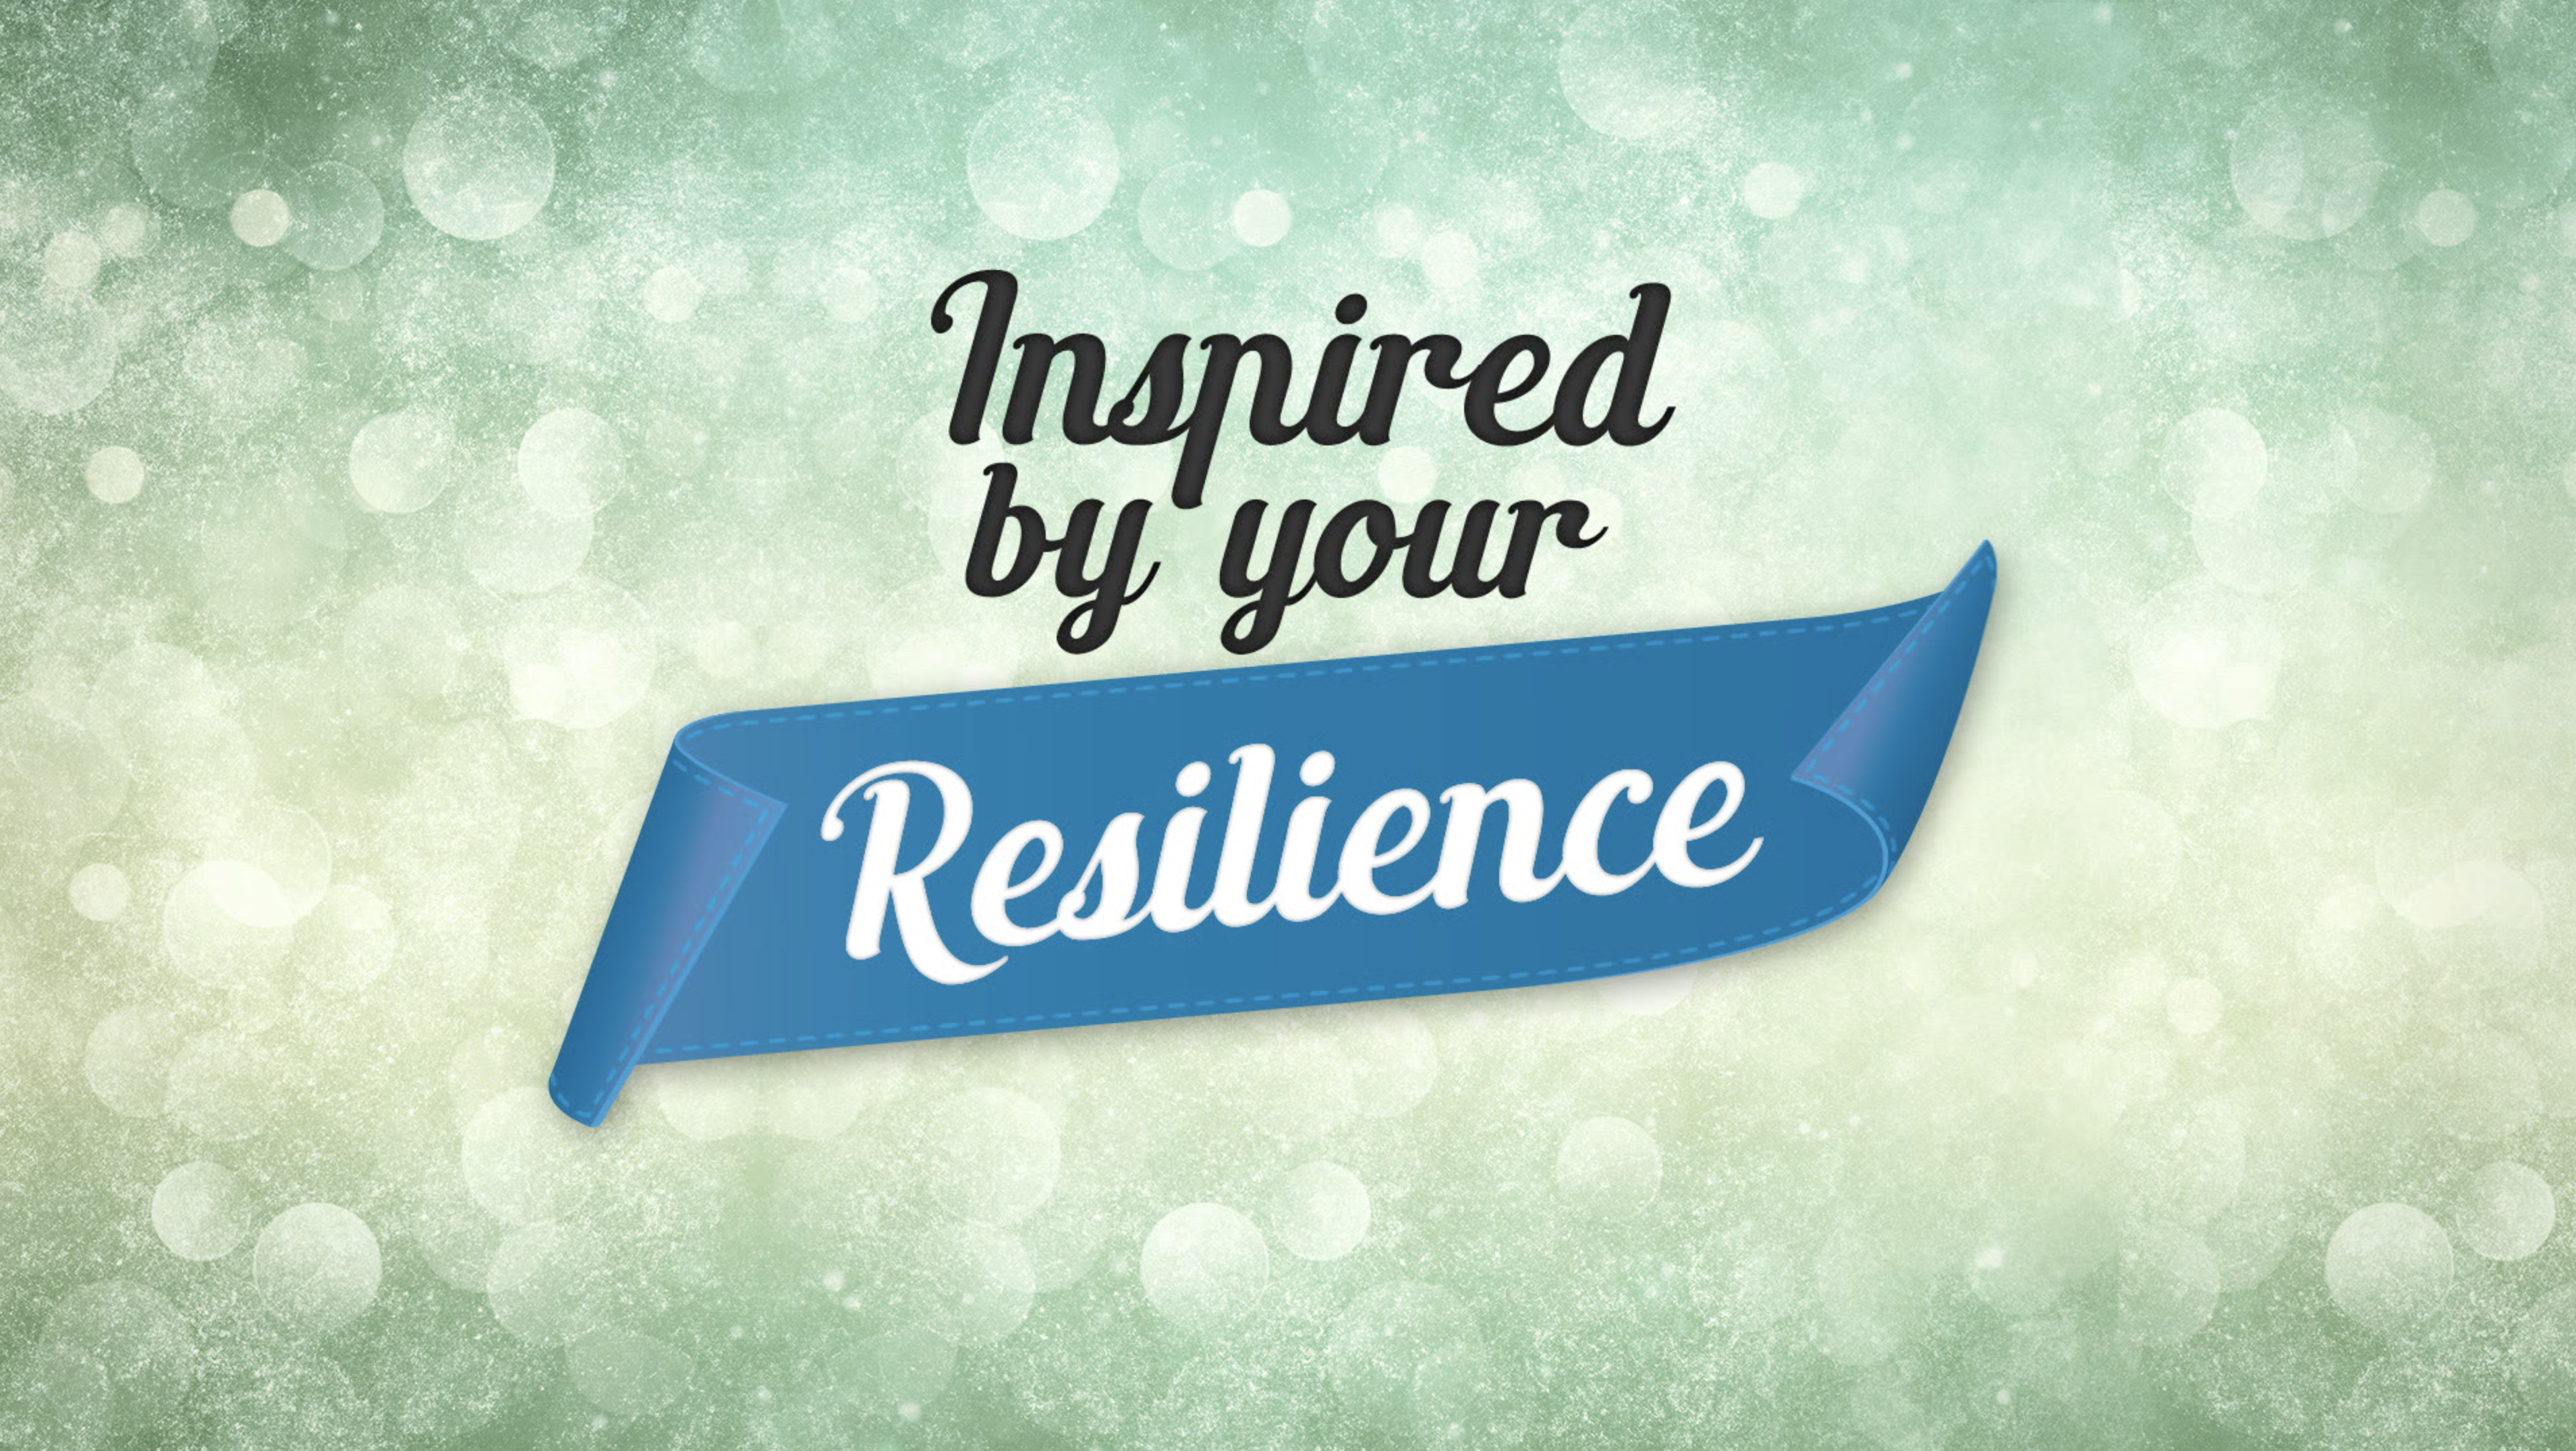 MOM Inspired By Your Resilience